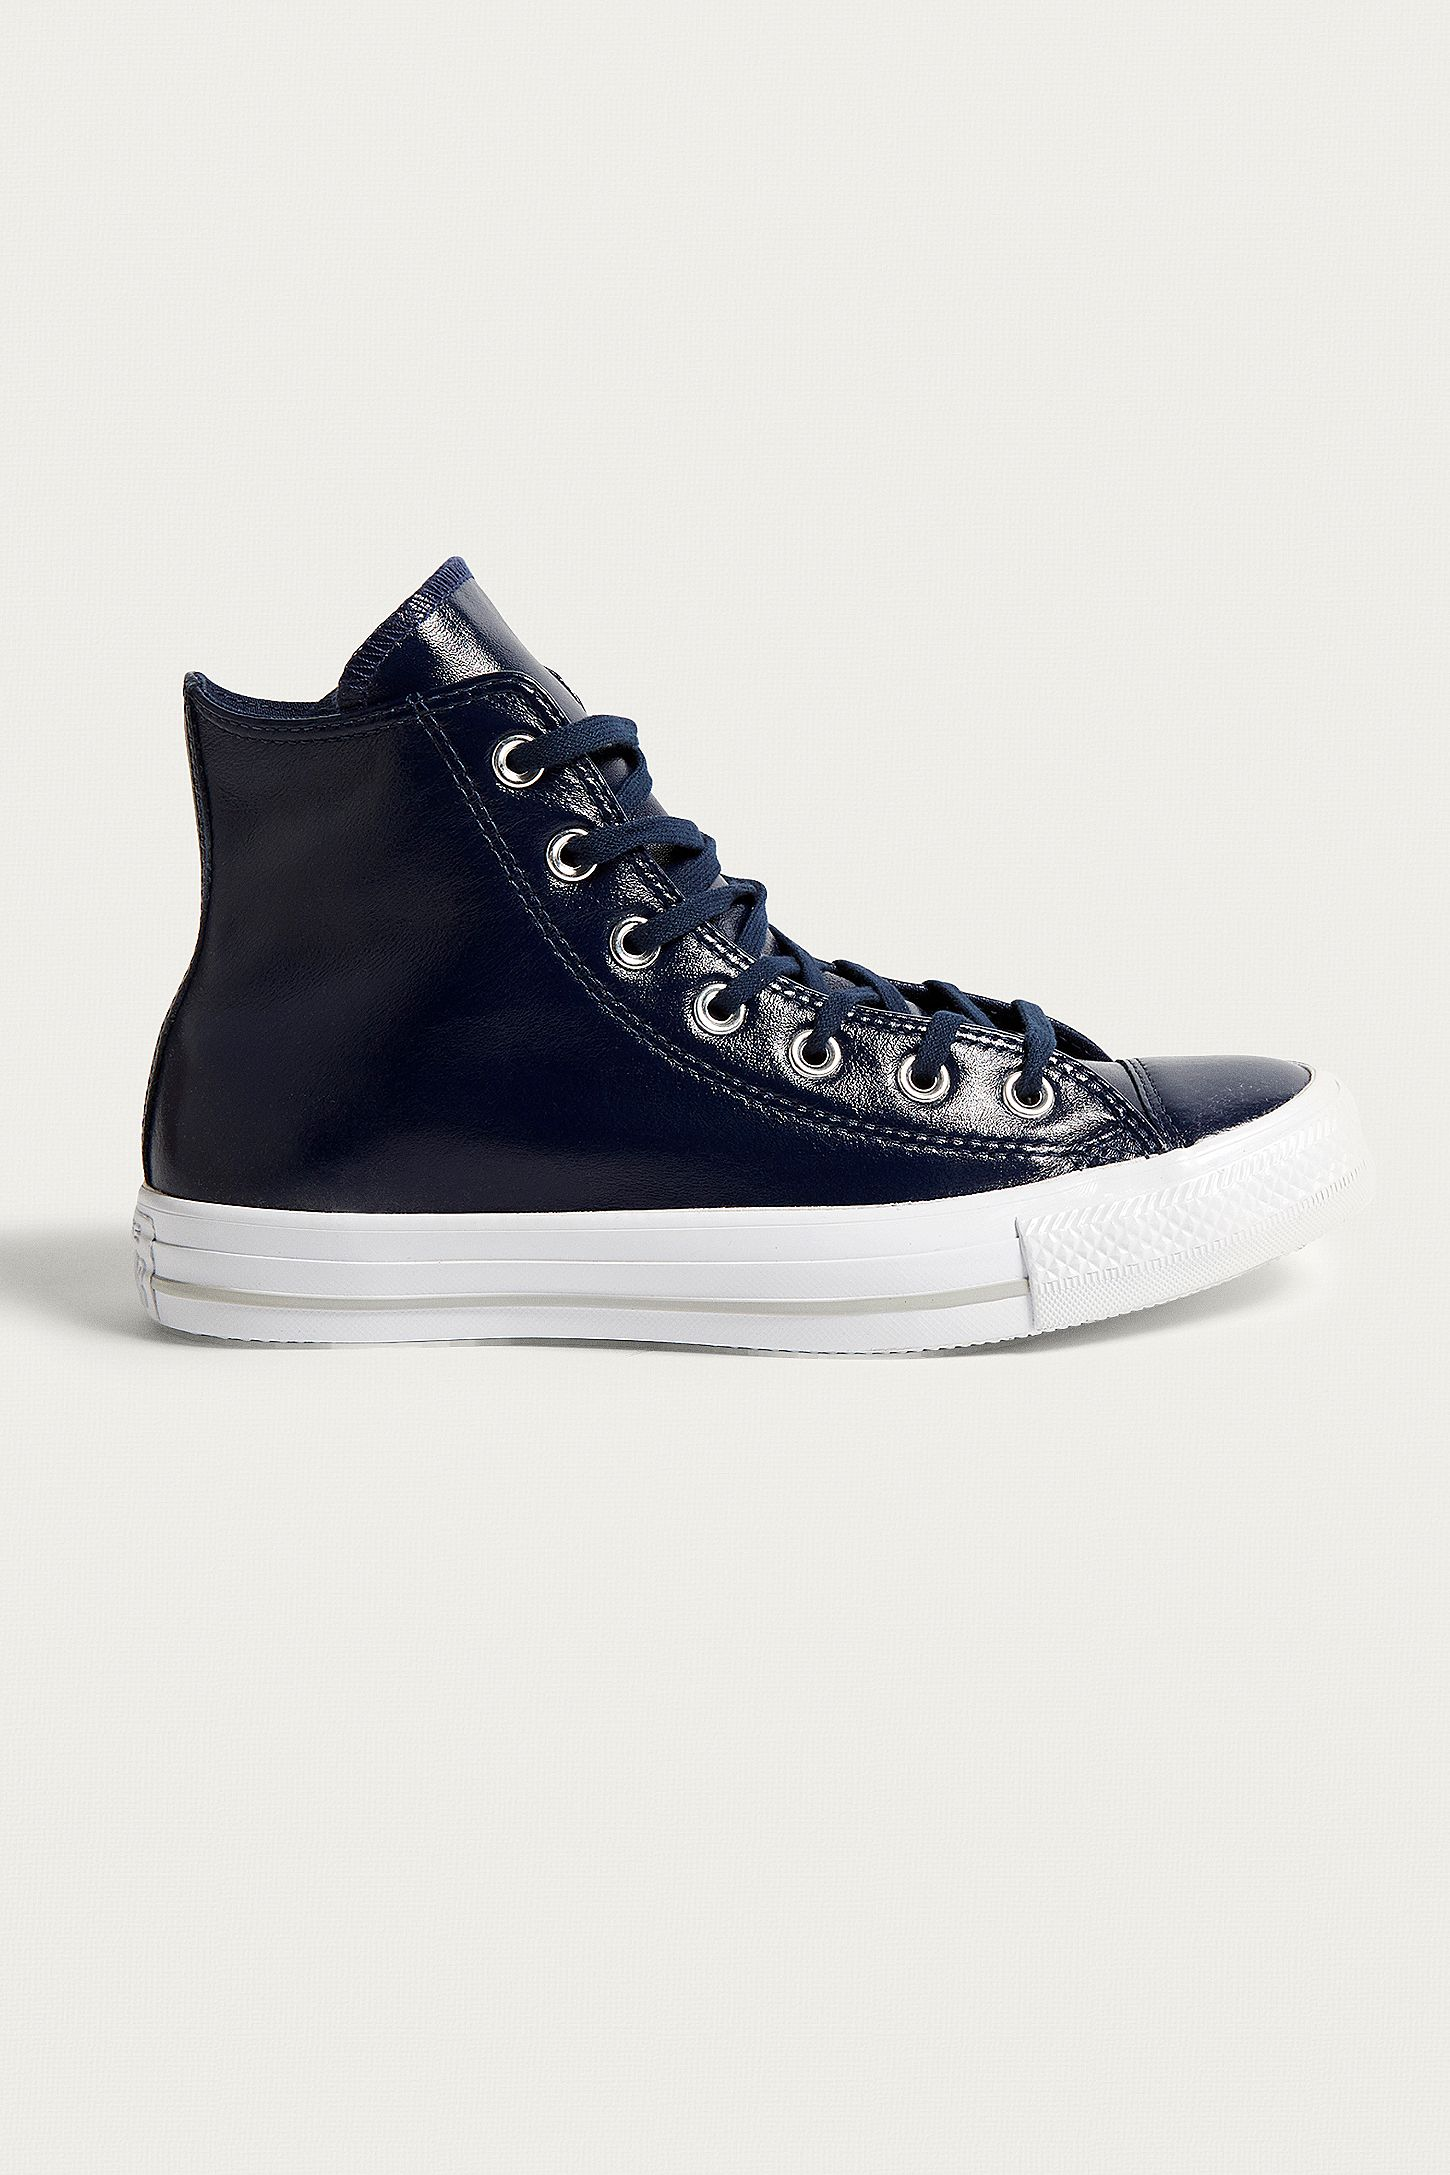 0196ef5038a8c7 Converse Chuck Taylor All Star Patent Leather High Top Trainers. Click on  image to zoom. Hover to zoom. Double Tap to Zoom